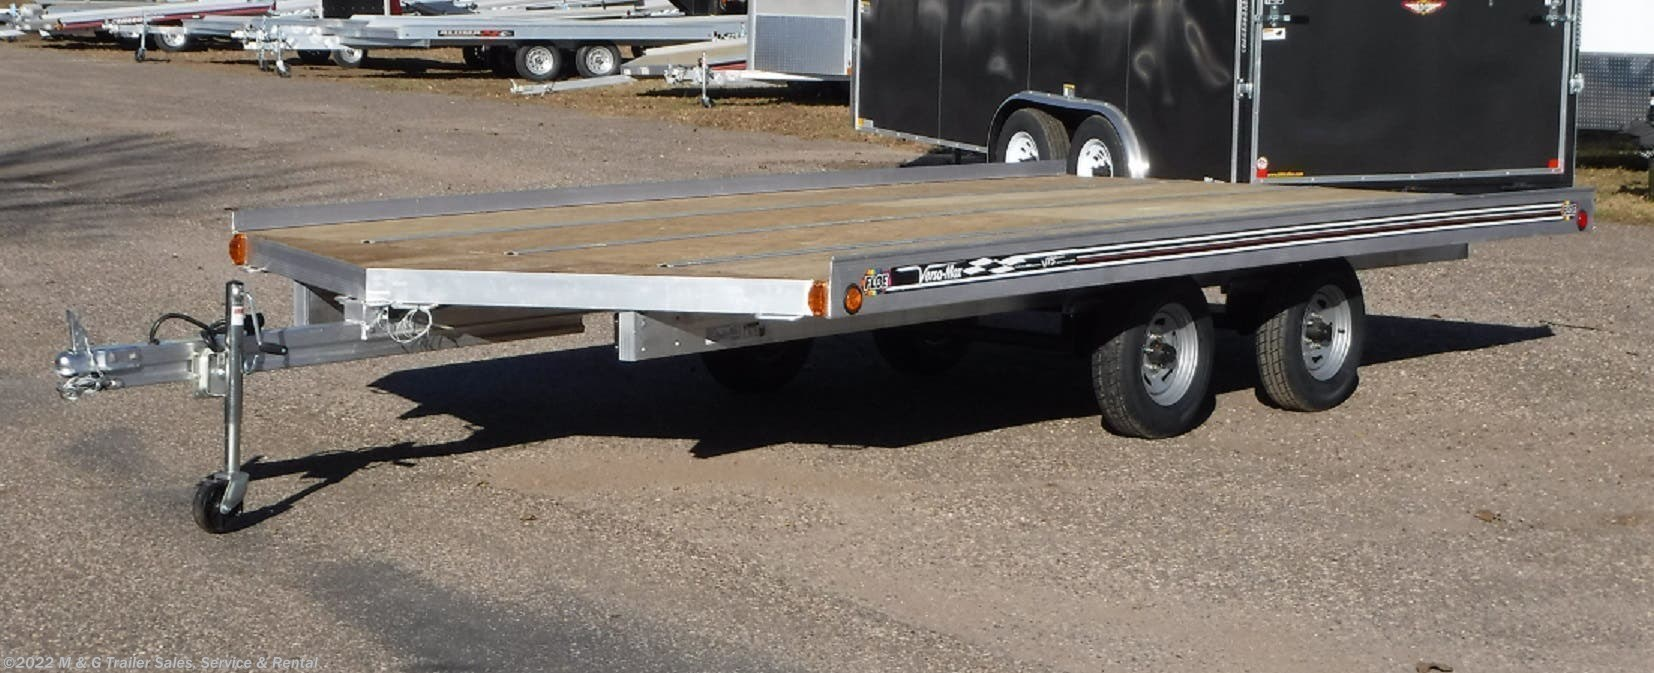 2021 FLOE Versa Max 16' Snowmobile Trailer - Stock #M001946